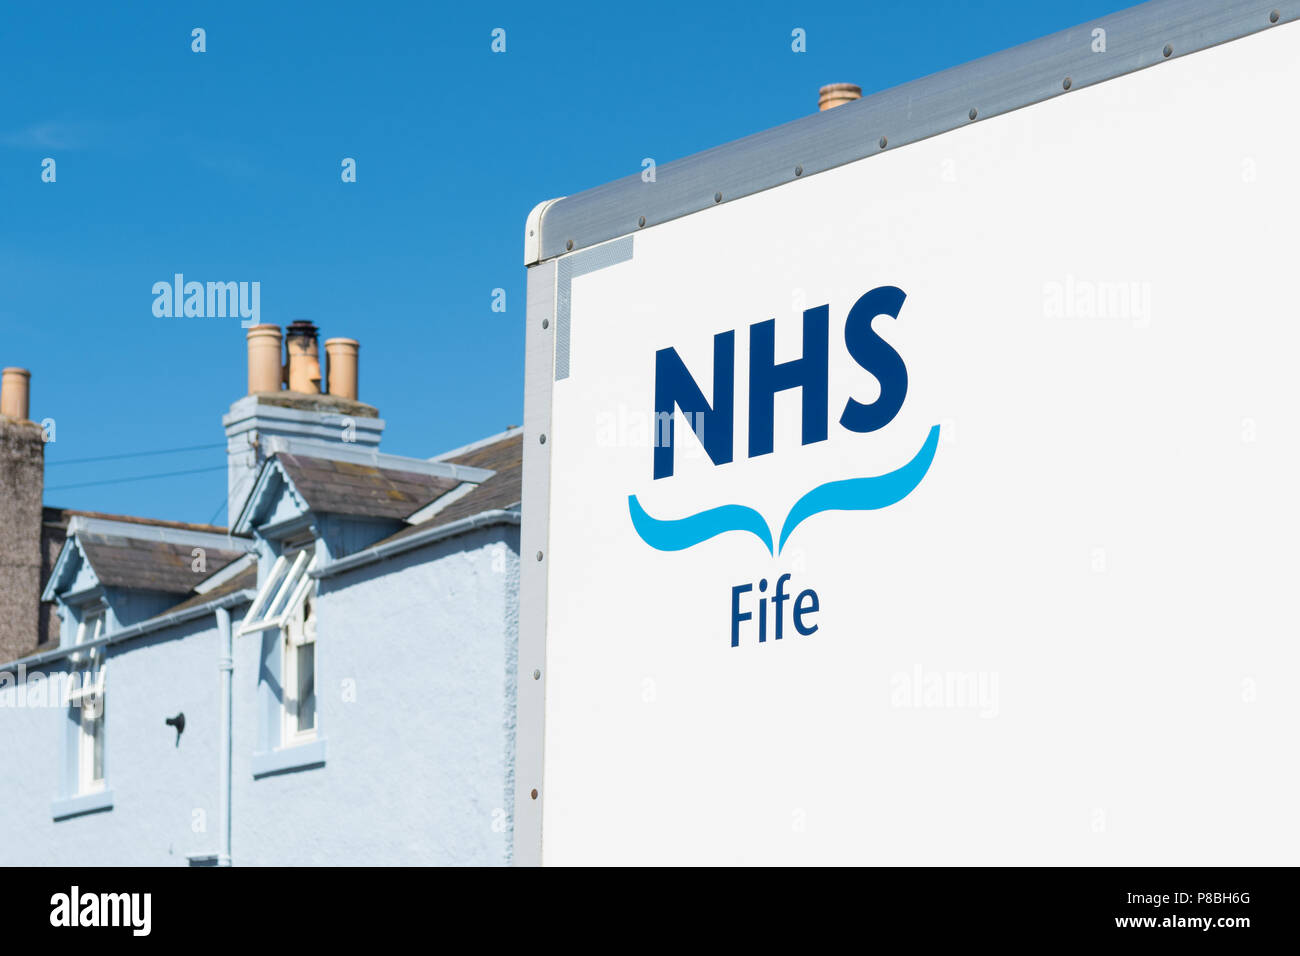 NHS Fife sign on side of lorry, Scotland, UK - Stock Image